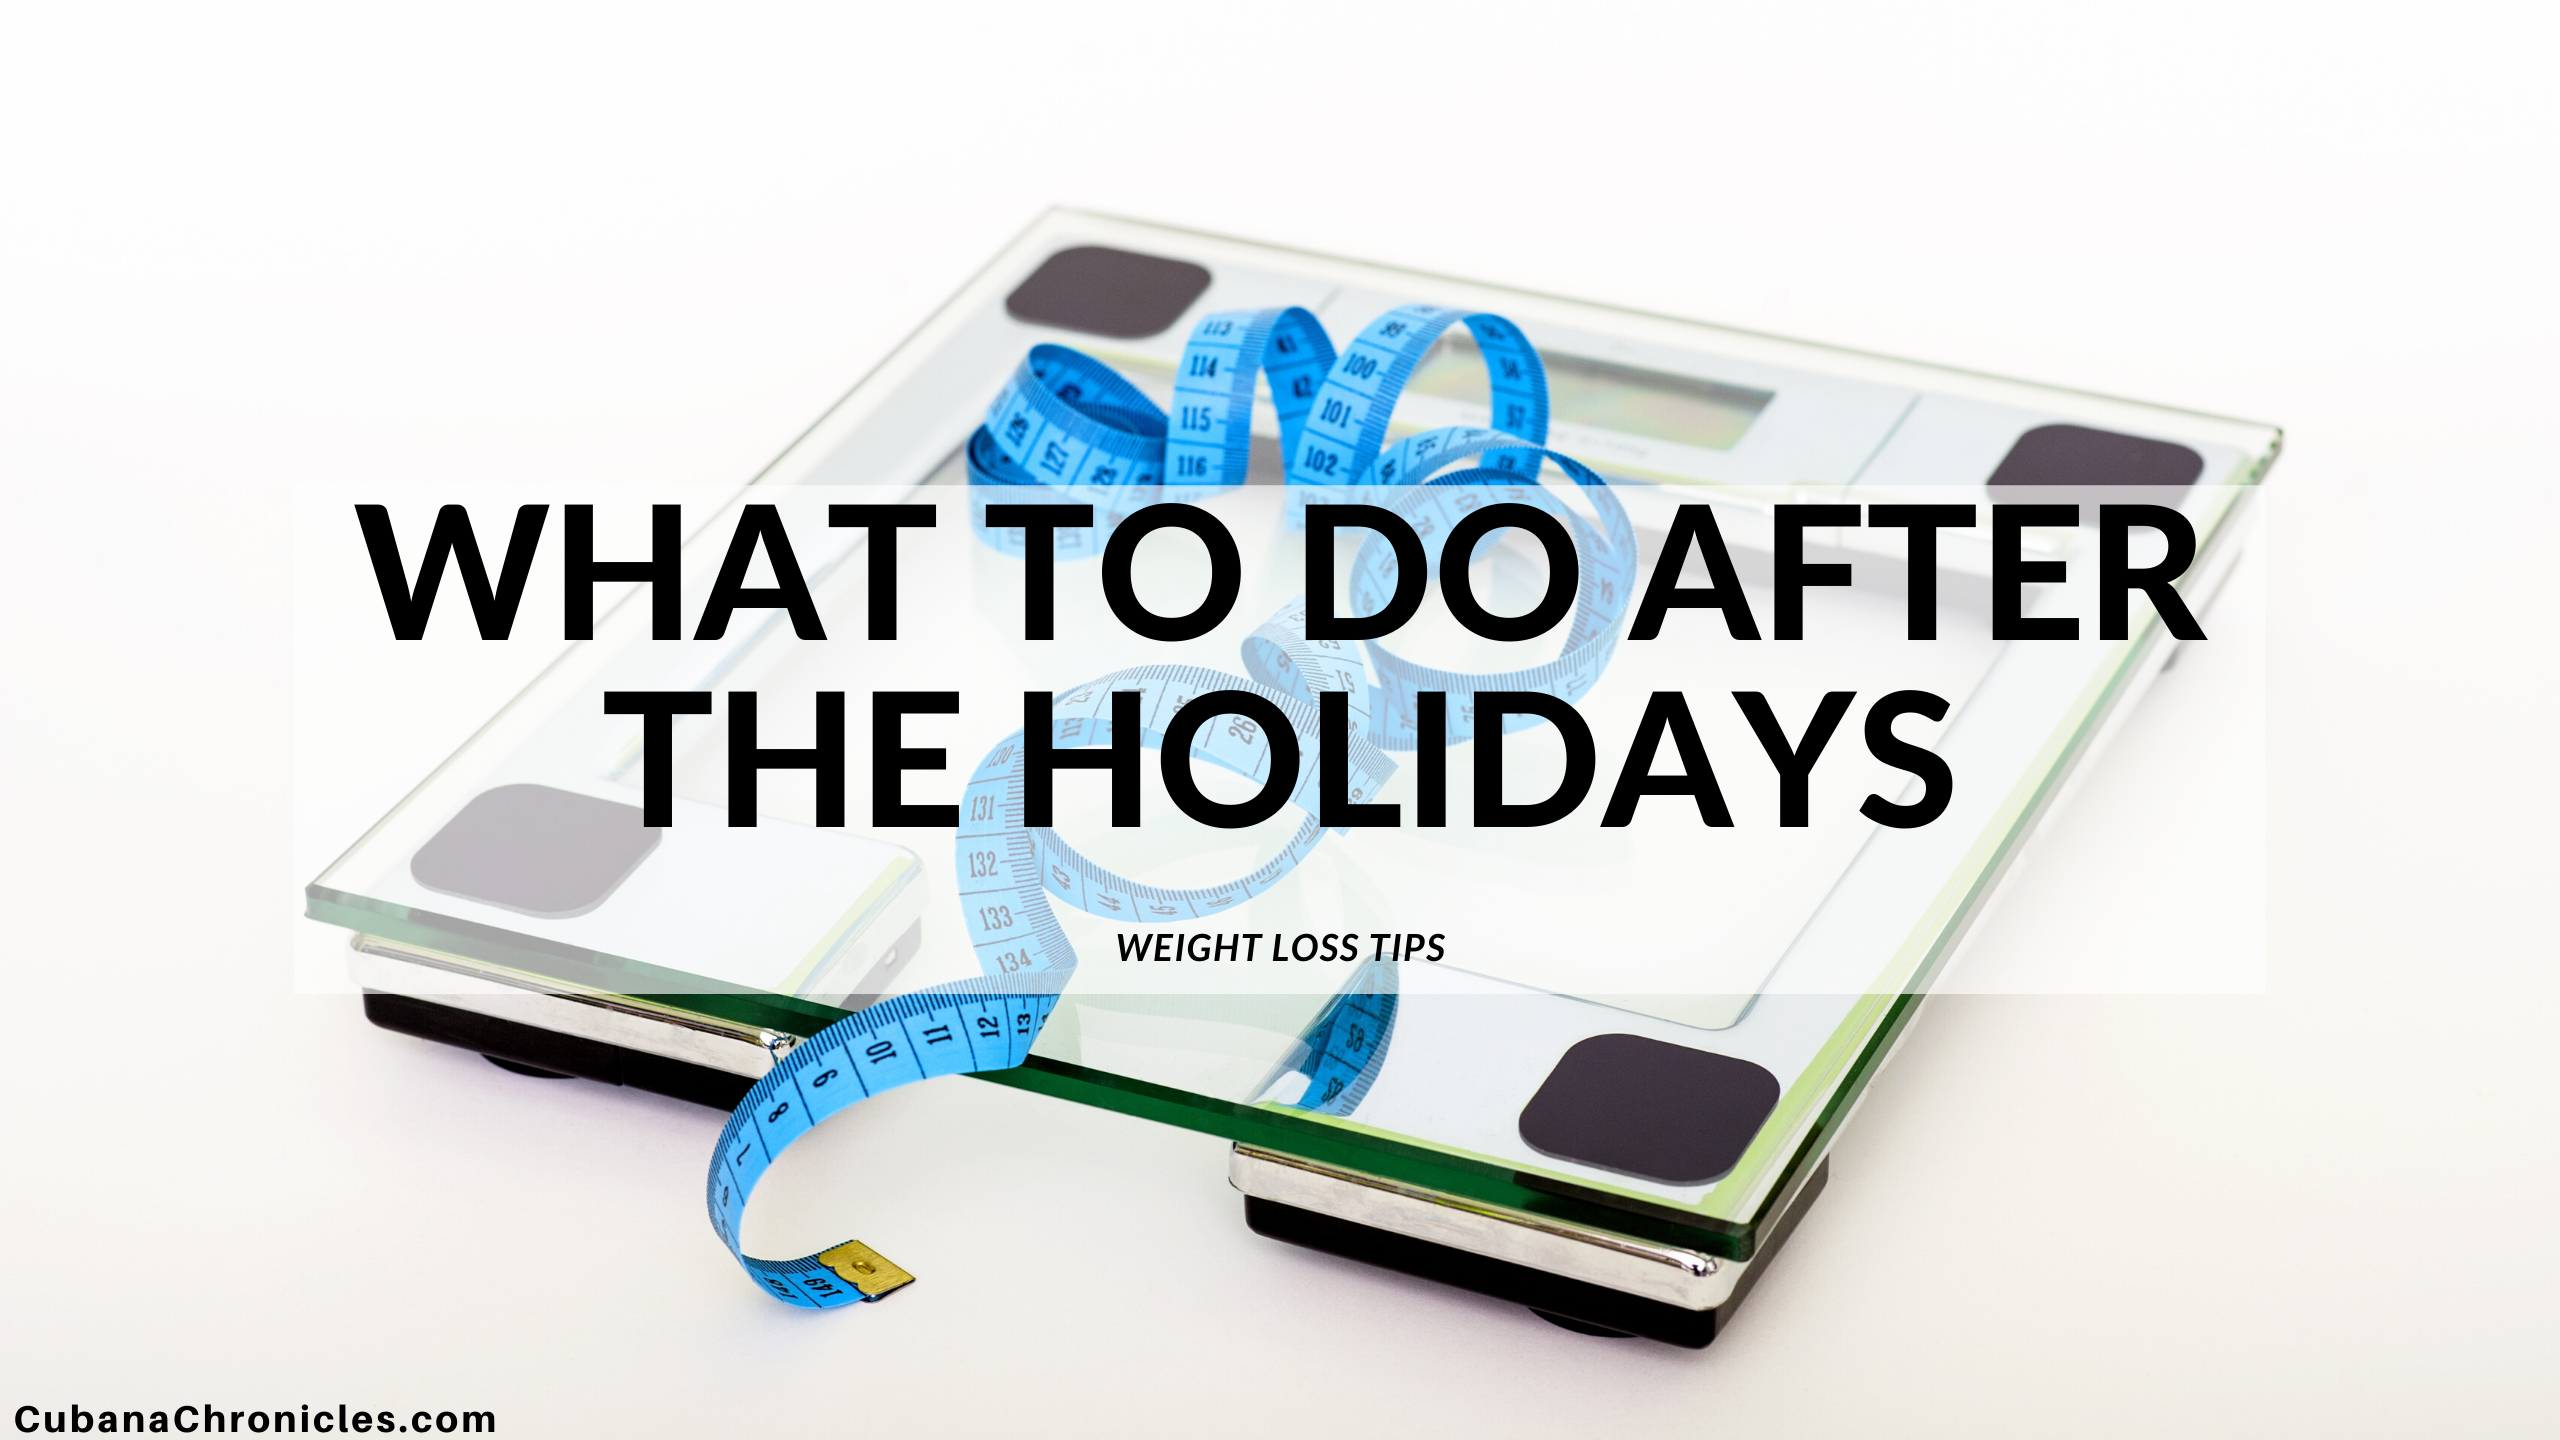 What To Do After the Holidays